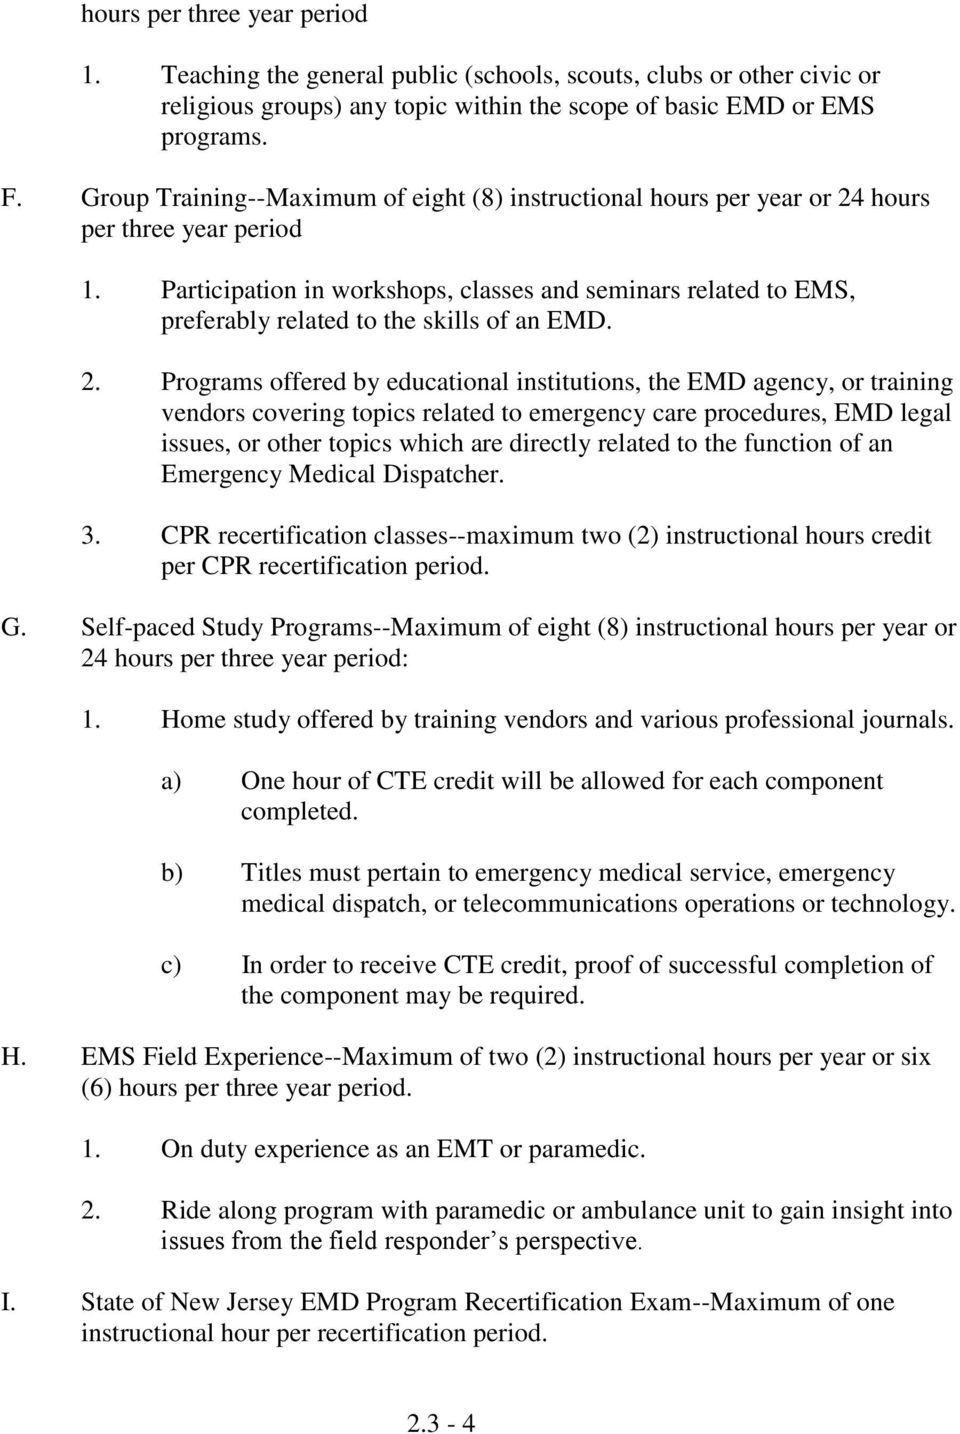 Participation in workshops, classes and seminars related to EMS, preferably related to the skills of an EMD. 2.